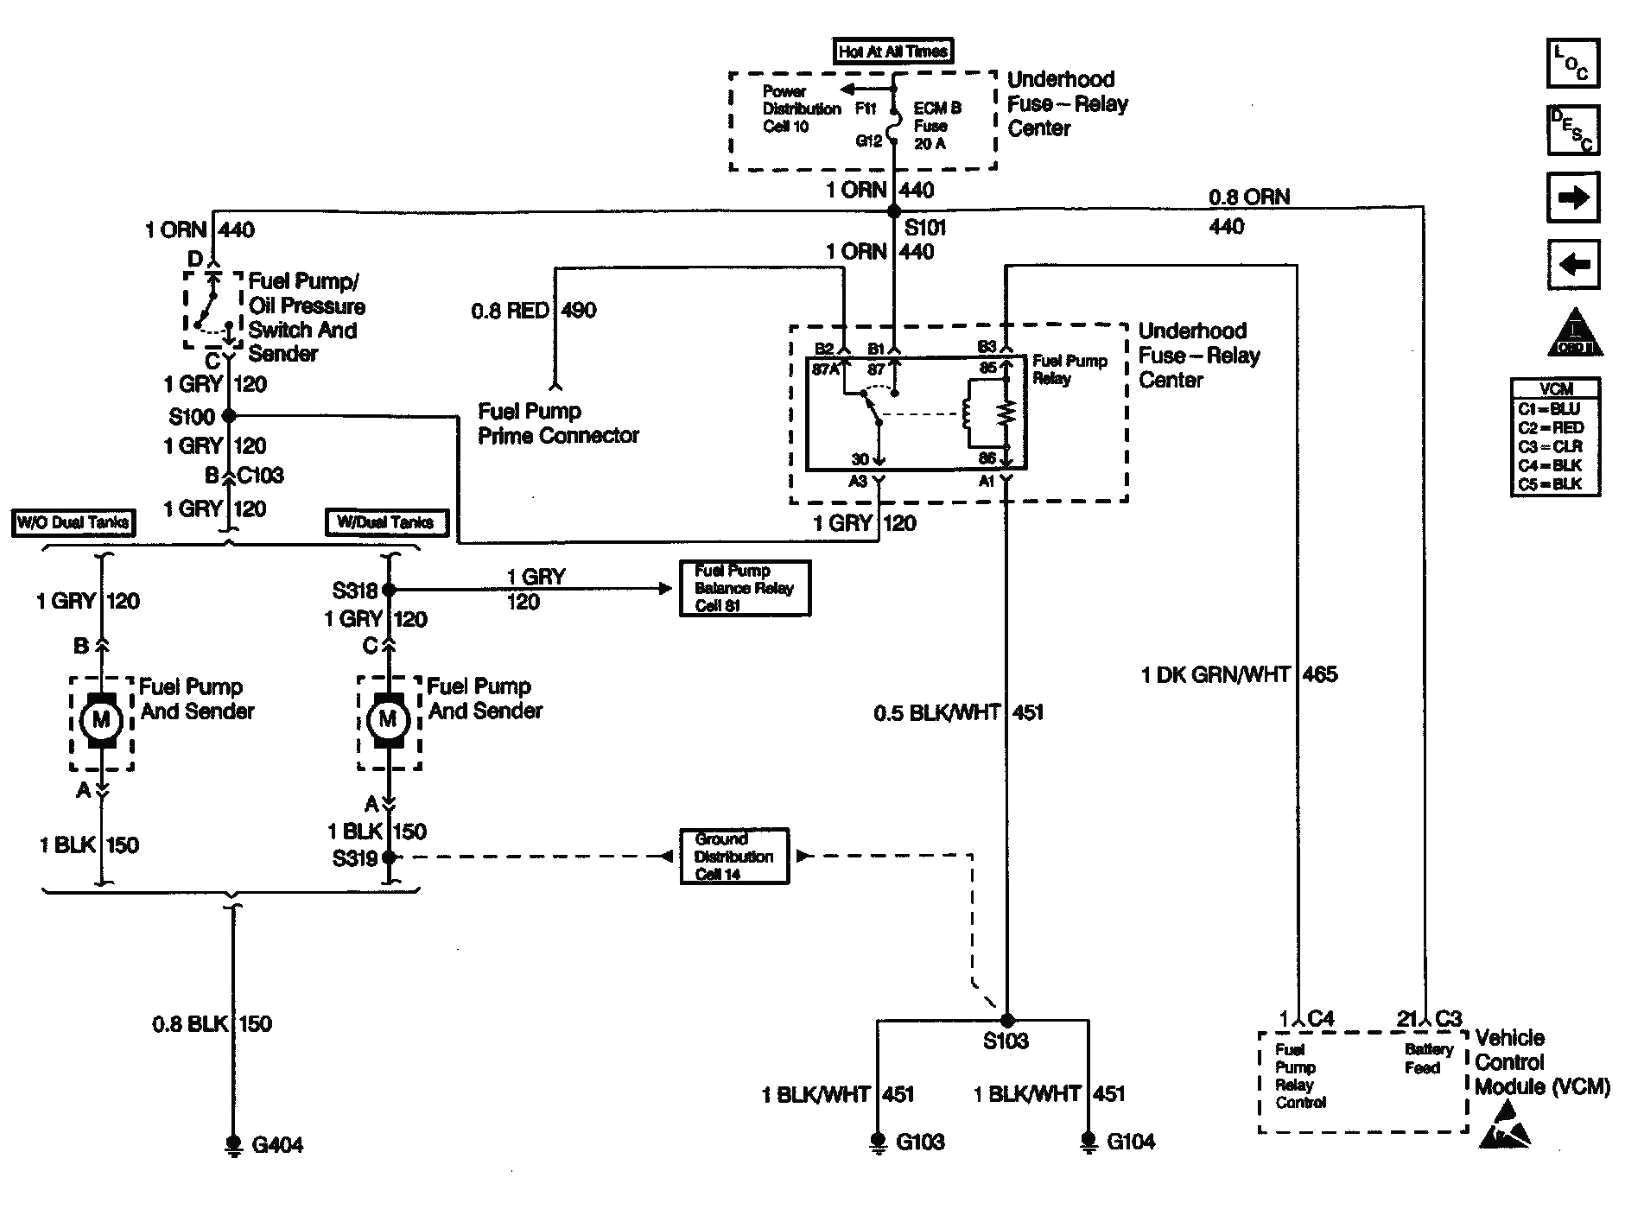 2003 silverado fuel pump diagram autos weblog extended wiring diagram 1998 chevy k1500 fuel pump relay